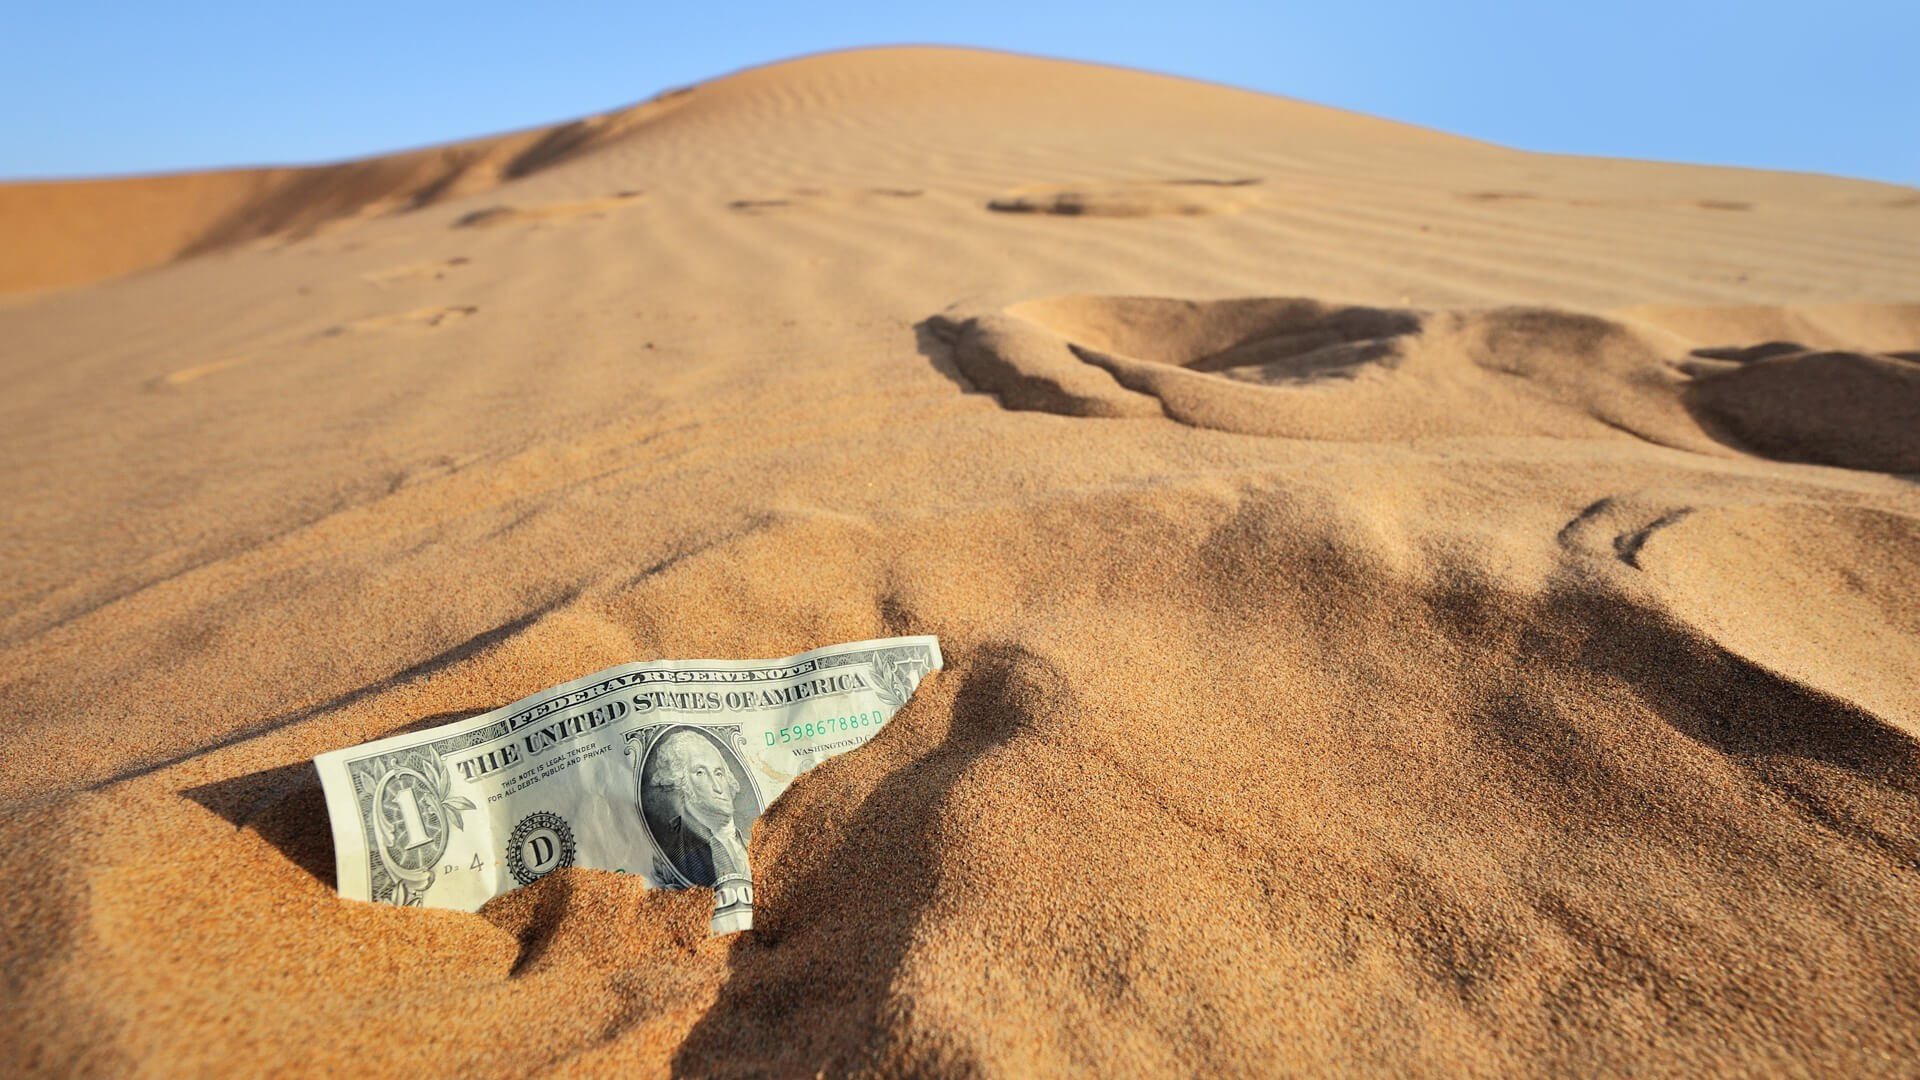 close up of dollar bill stuck in sloping sand, concept image of financial crisis and related currency turmoils.